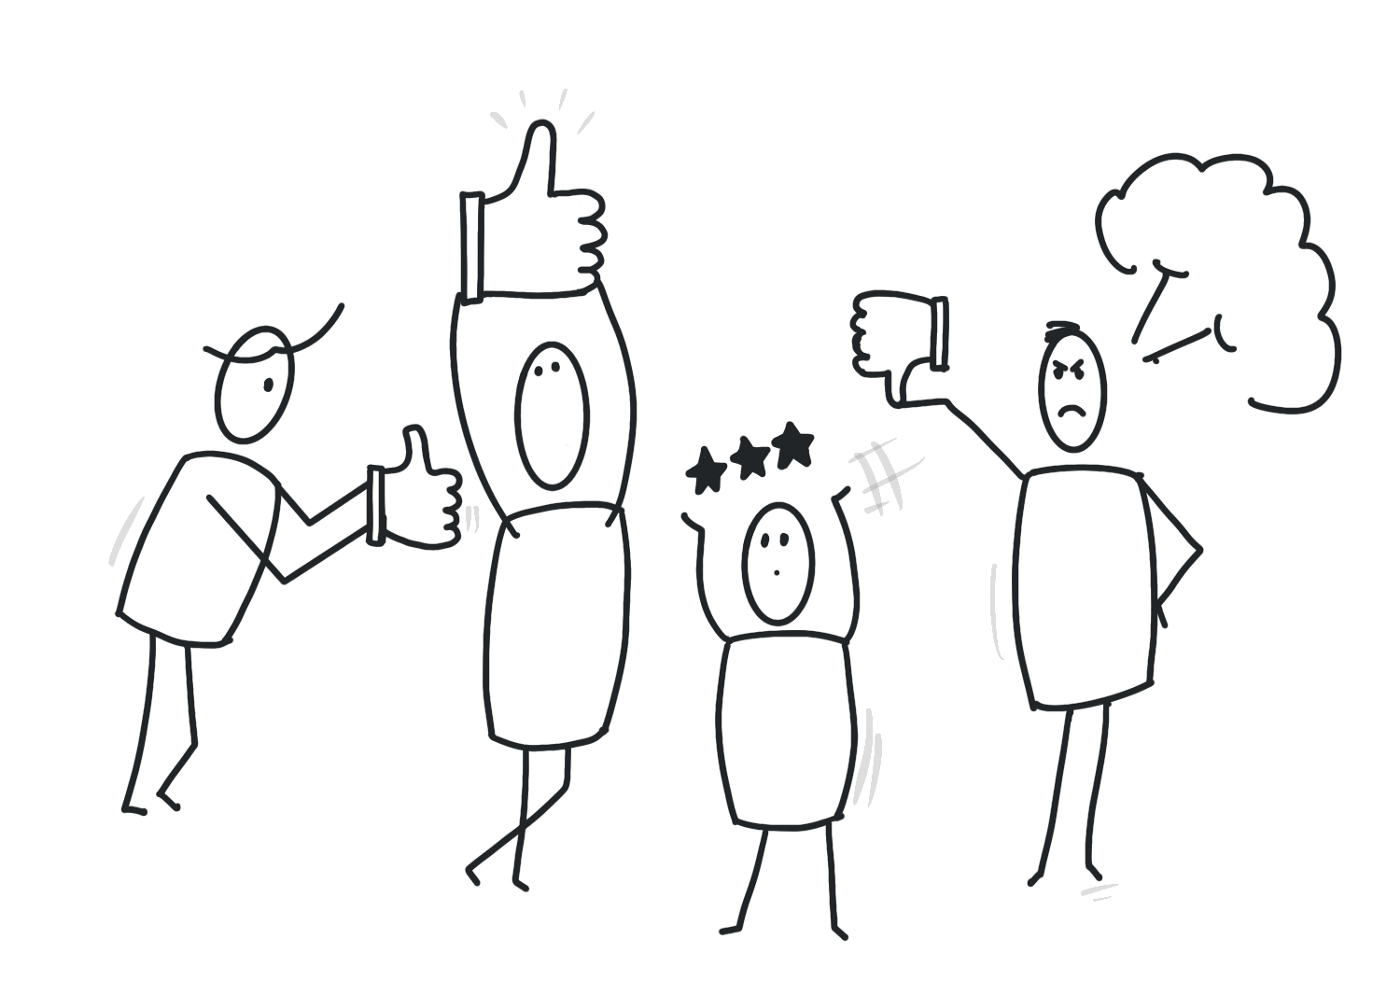 An illustration of feedback through likes and ratings.